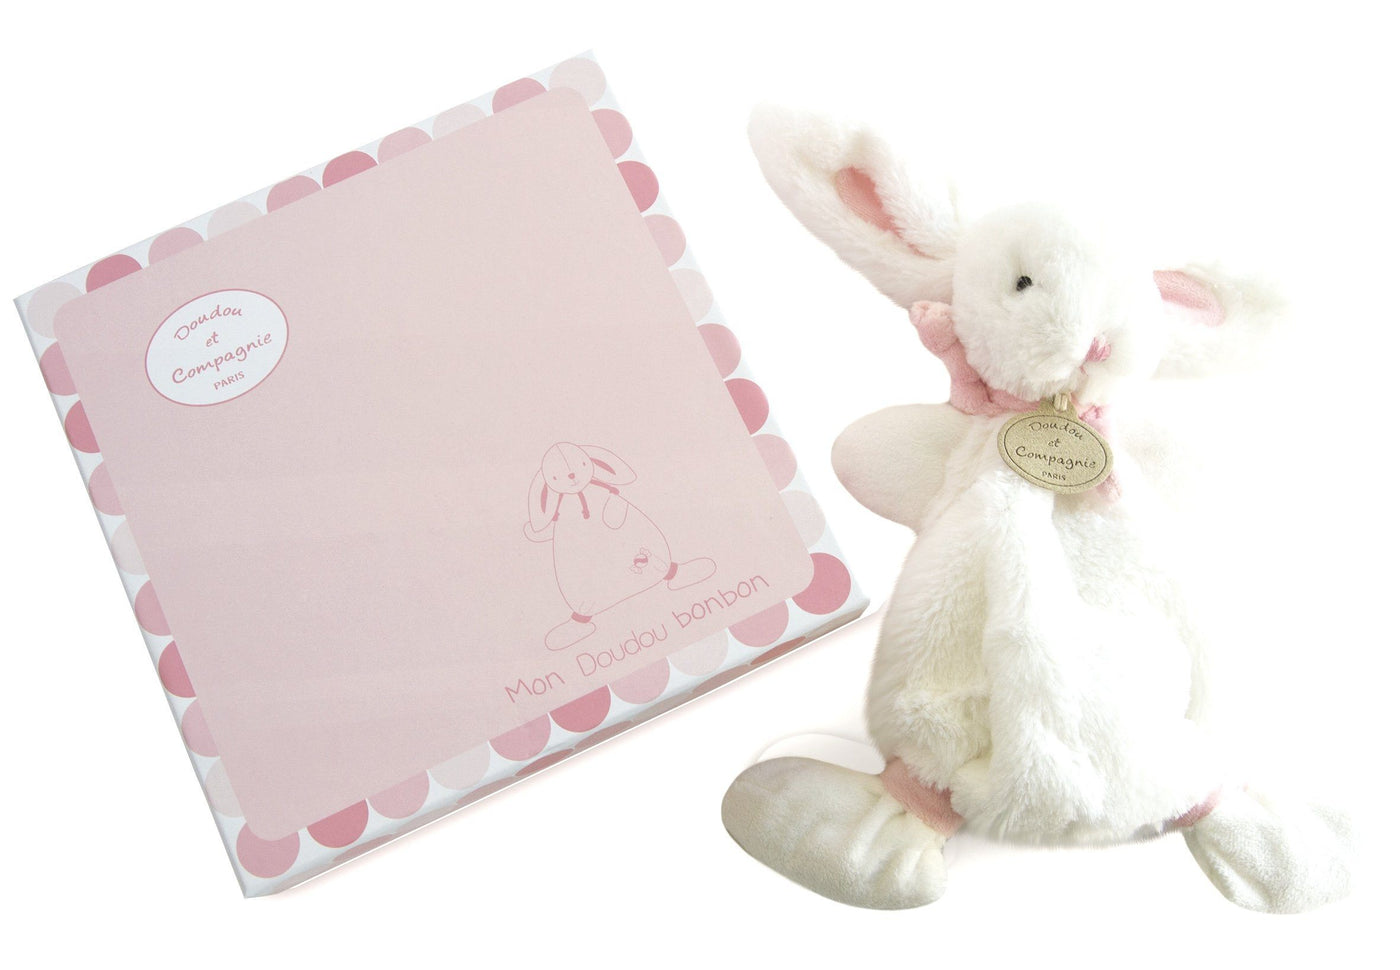 Dou Dou et Compagnie rabbit comforter taupe or pink or blue BABY Doudou et Compagnie pink